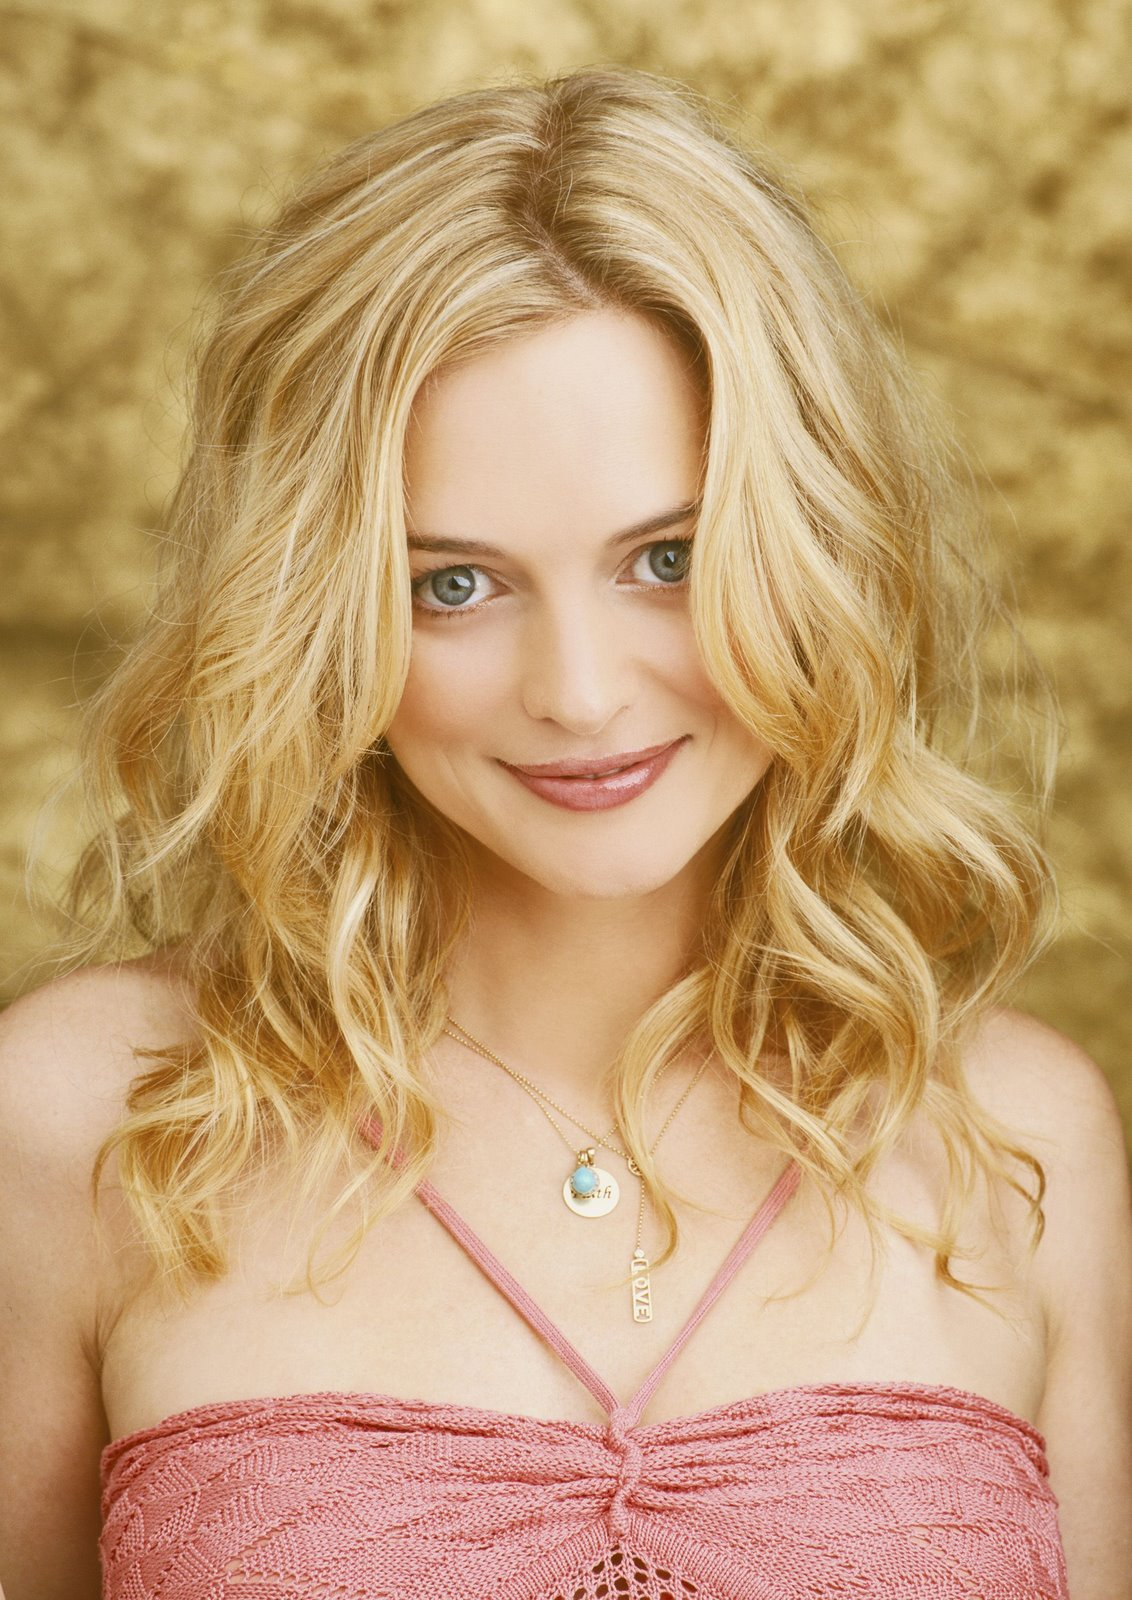 Heather Graham - Wallpaper Gallery